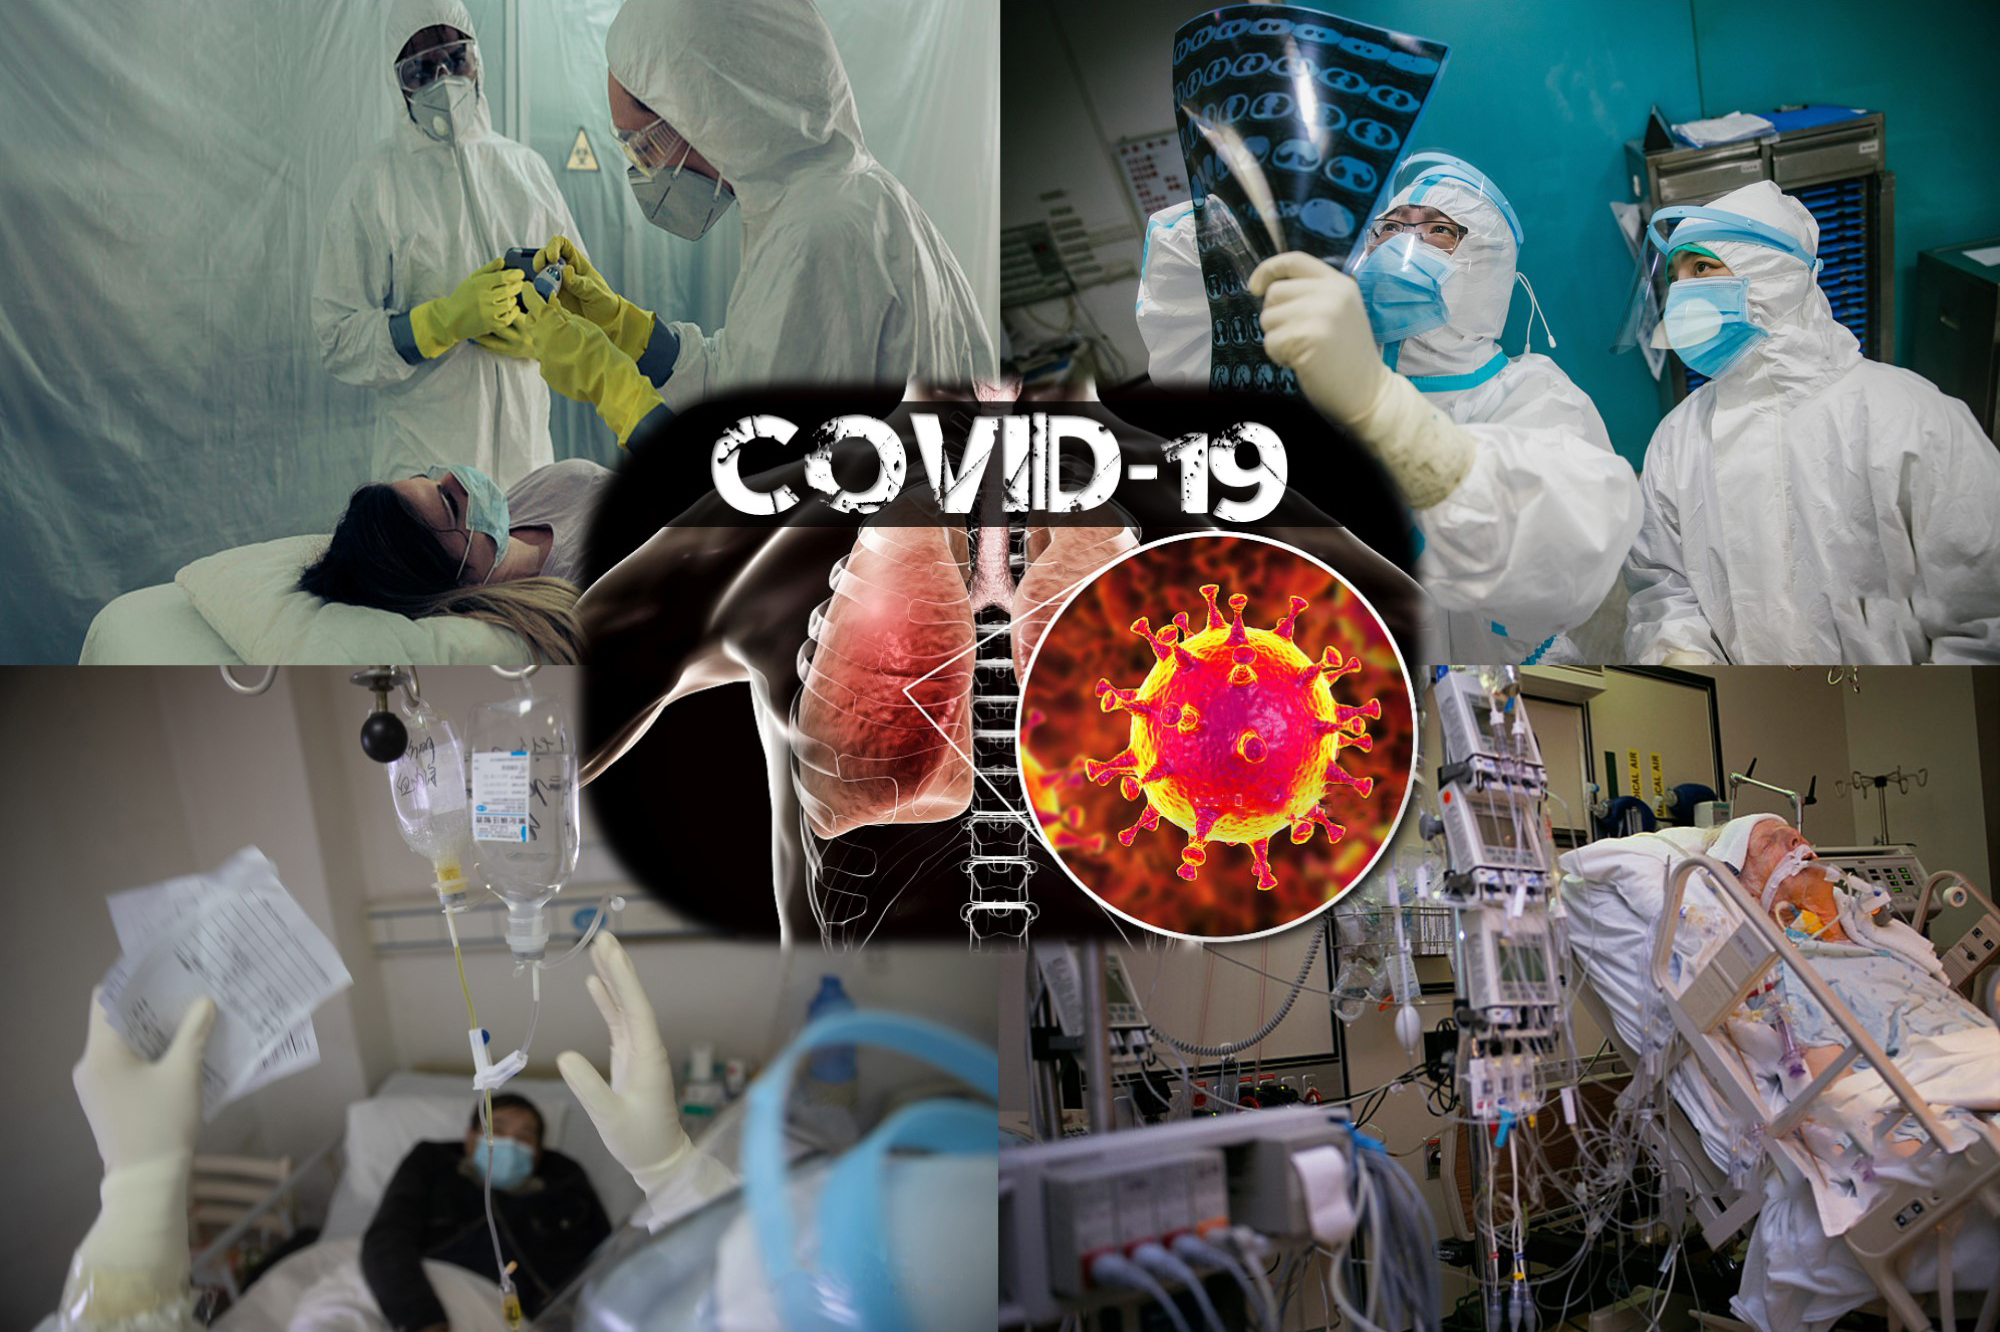 Medical waste containing new coronavirus will have a serious impact